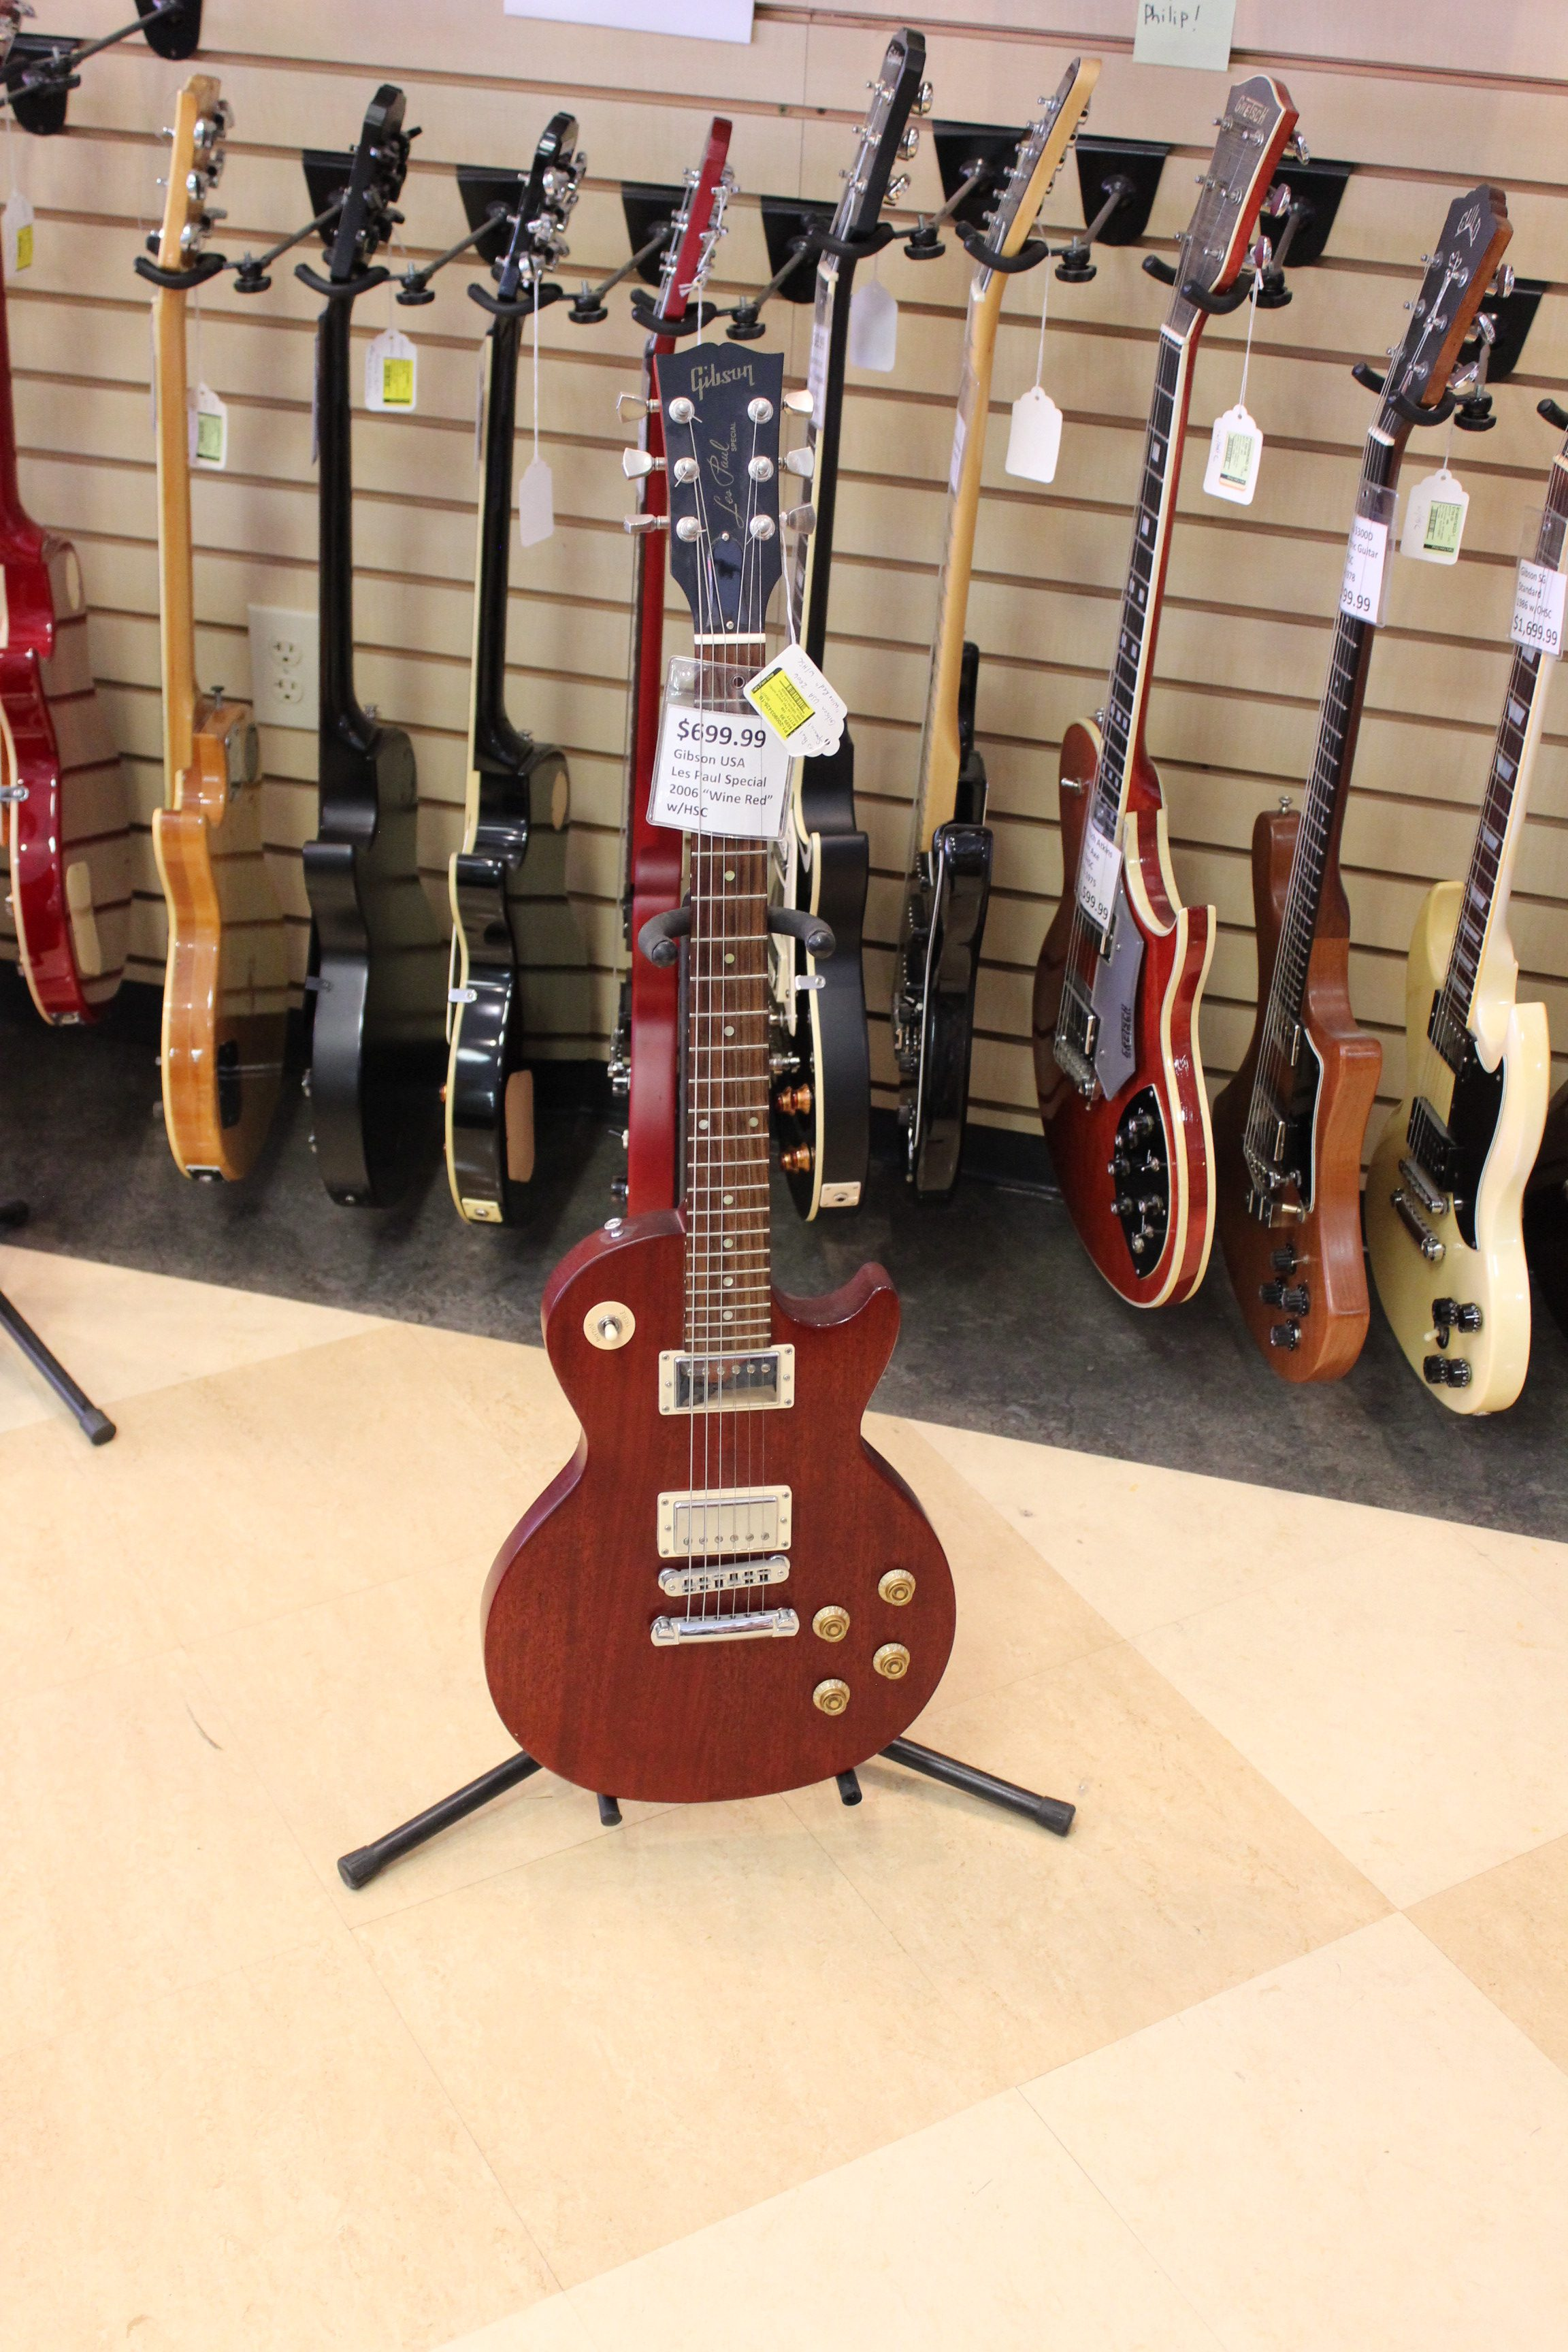 gibson usa les paul special electric guitar 2006 wine red used ted 39 s pawn shop. Black Bedroom Furniture Sets. Home Design Ideas